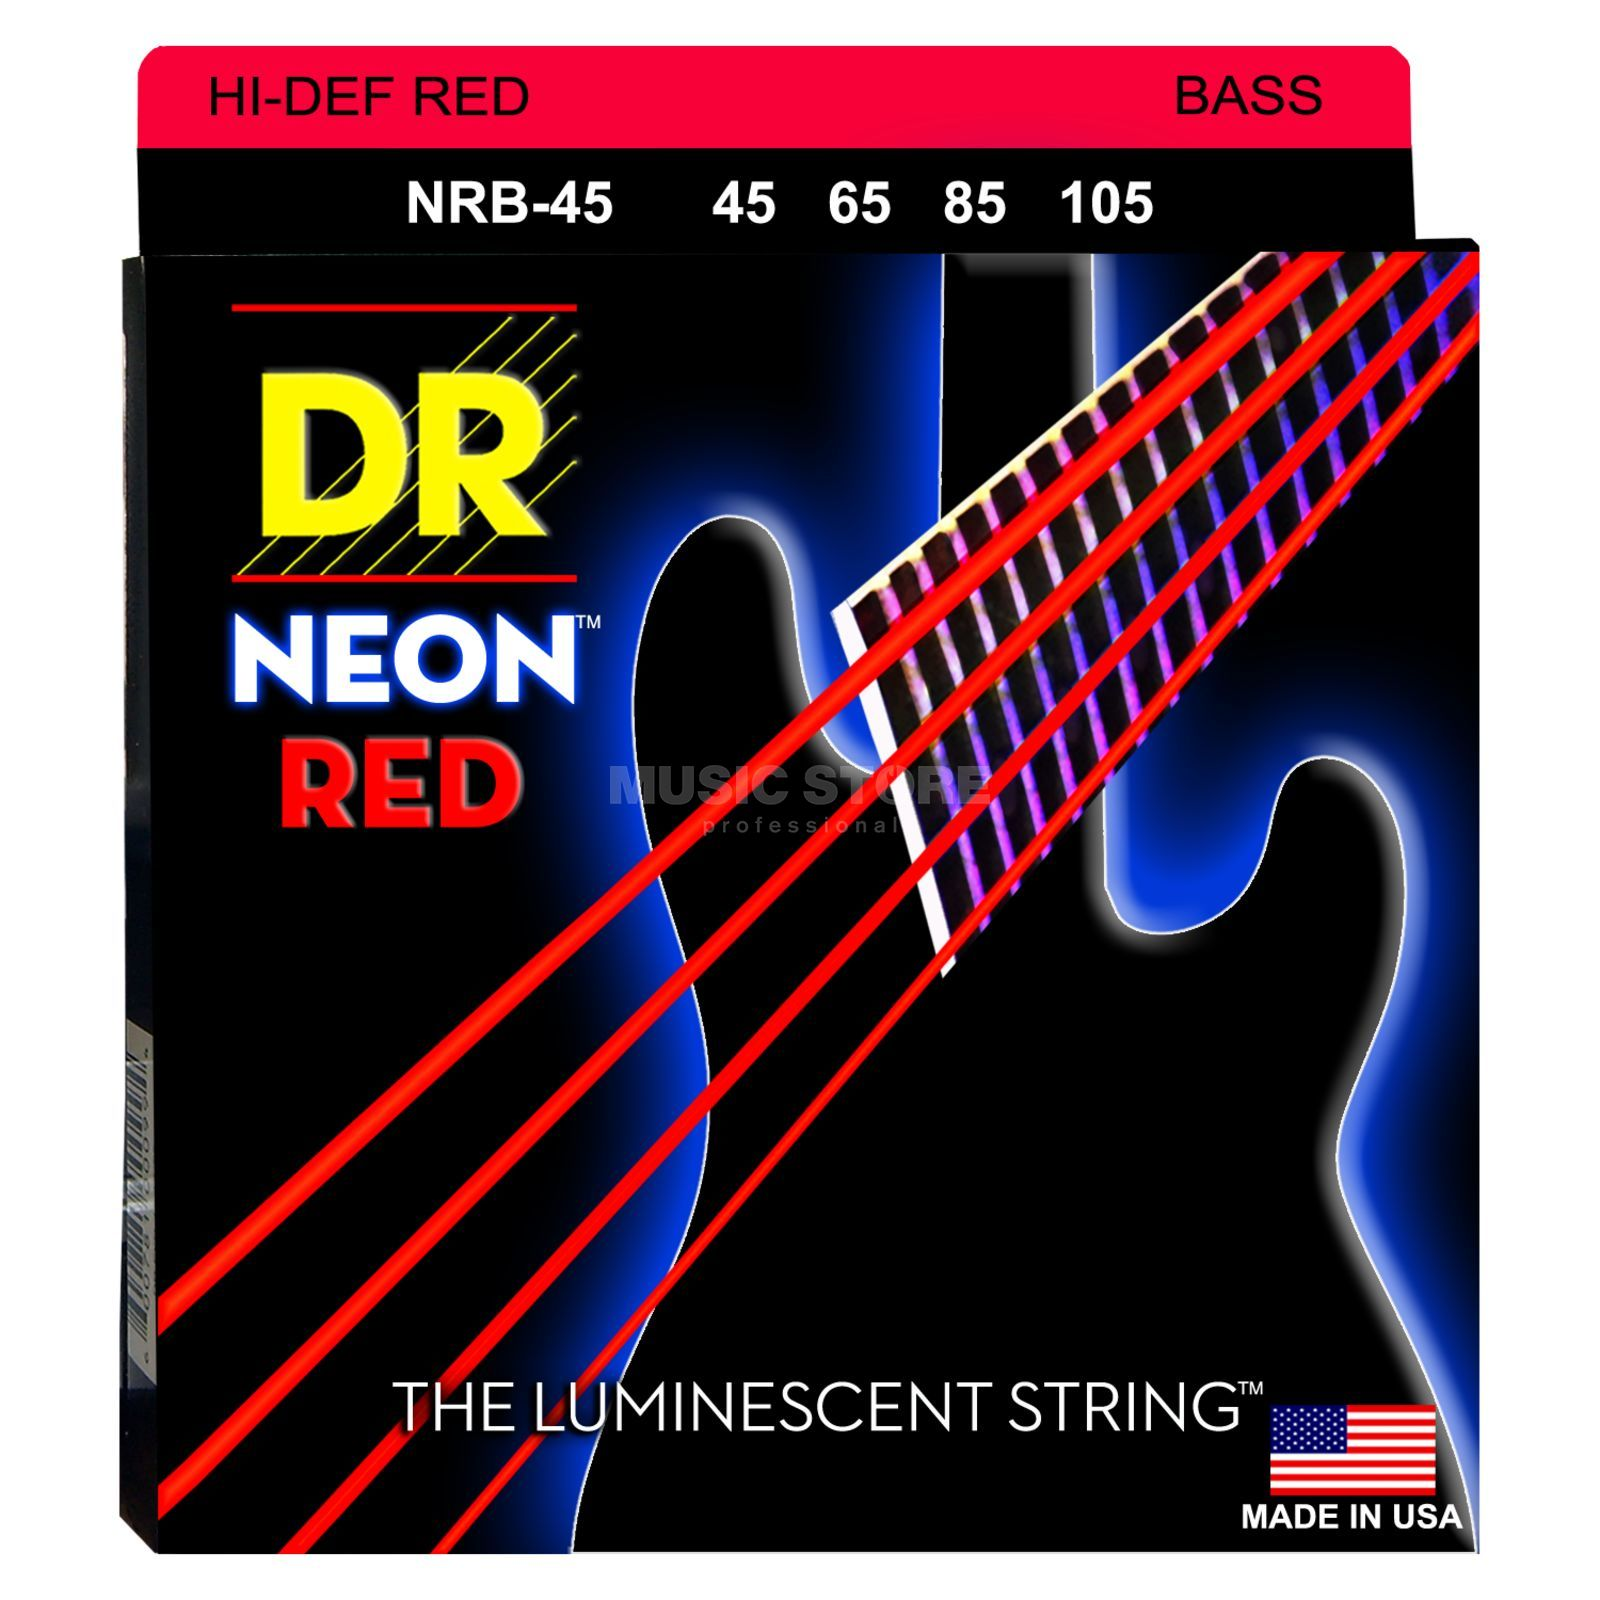 DR 4er bas 45-105 Hi-Def neon rood neon NRB-45 Productafbeelding